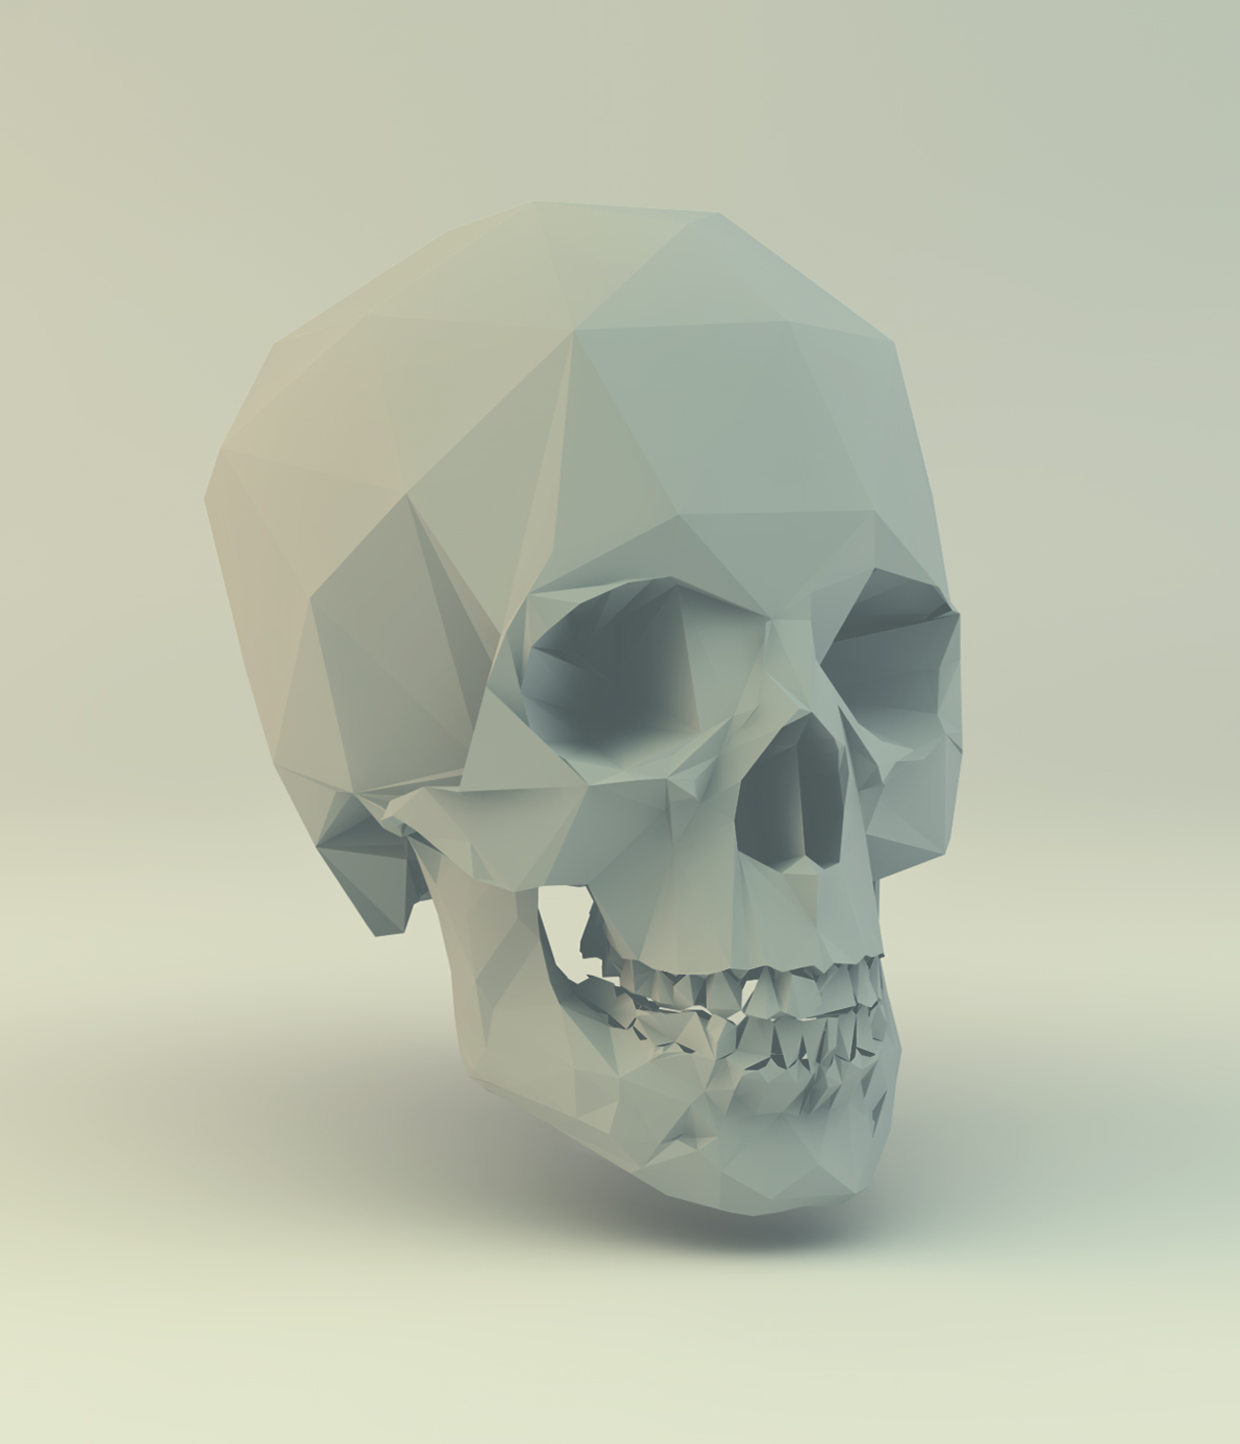 Low Poly Skull I Like This Piece Because Of Its Minimalism